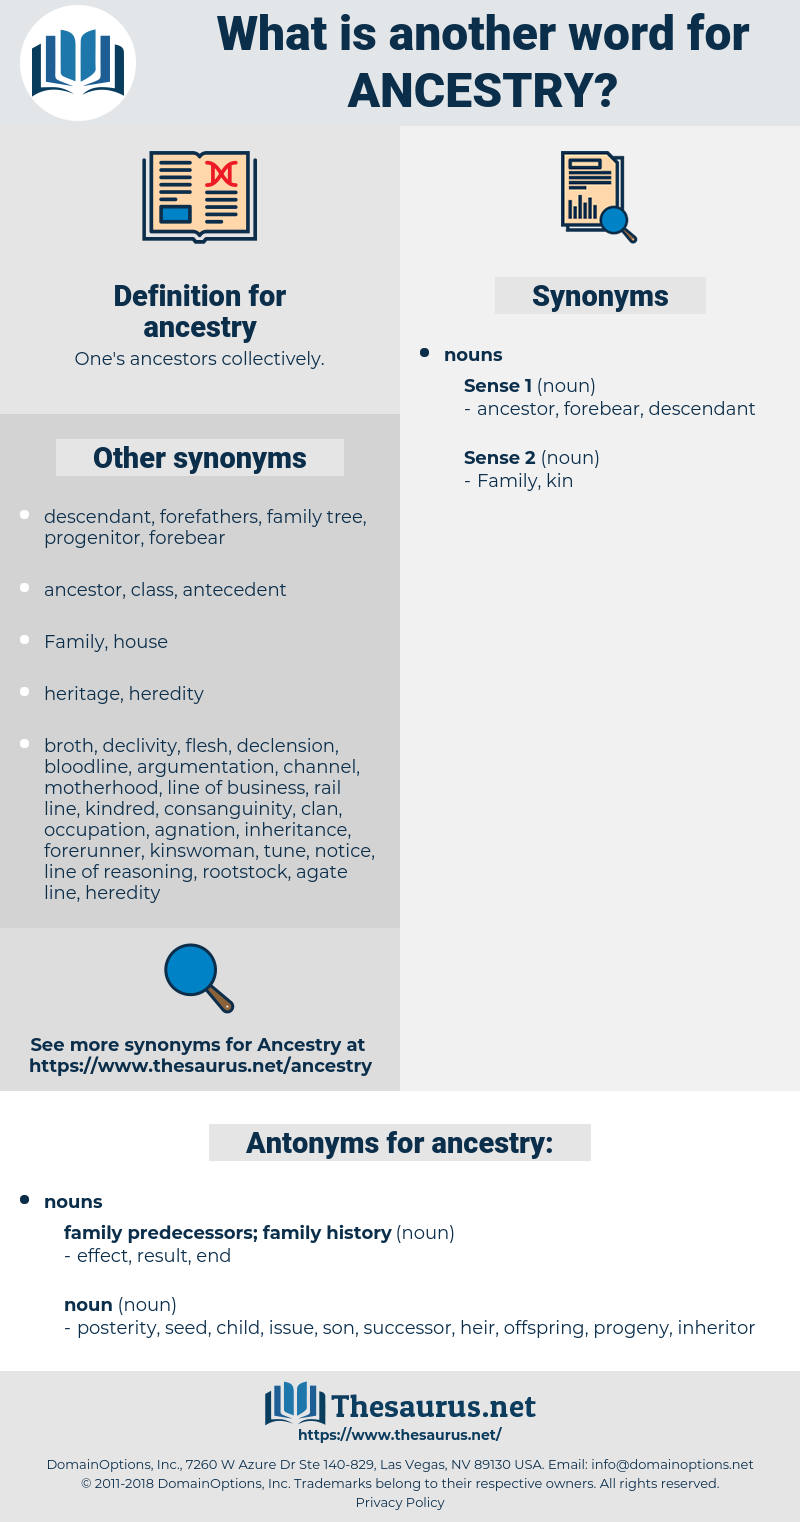 ancestry, synonym ancestry, another word for ancestry, words like ancestry, thesaurus ancestry